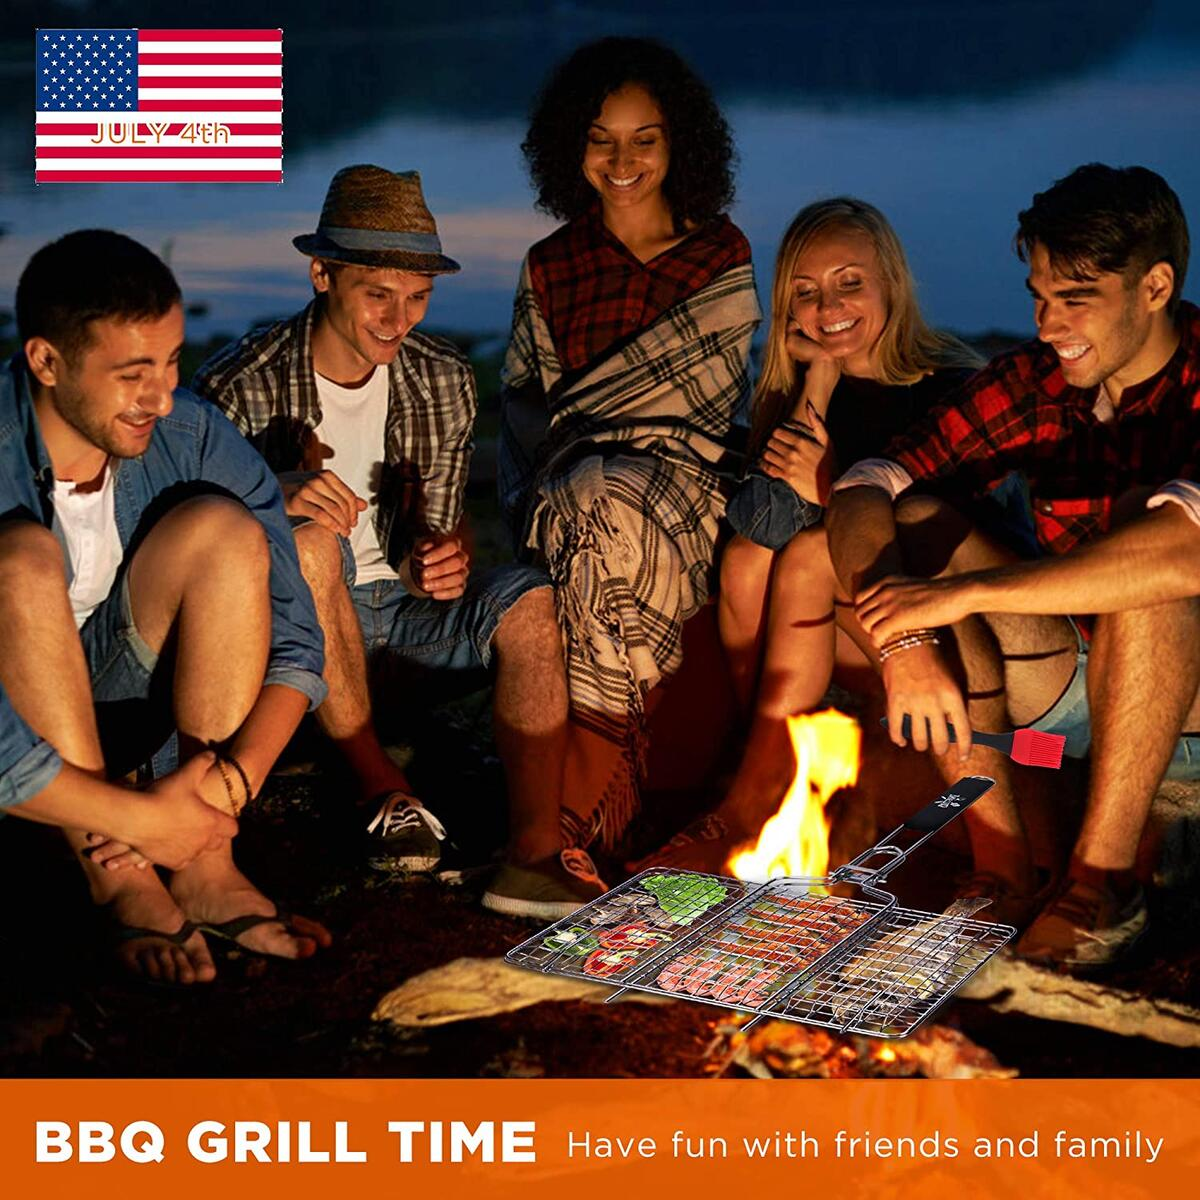 GRILLSOME Grill Basket Stainless Steel with Black Handles, Steak, Shrimp, BBQ, Pork, Vegetables, Comes 2 Grilling Mats and Brush Outdoors Use